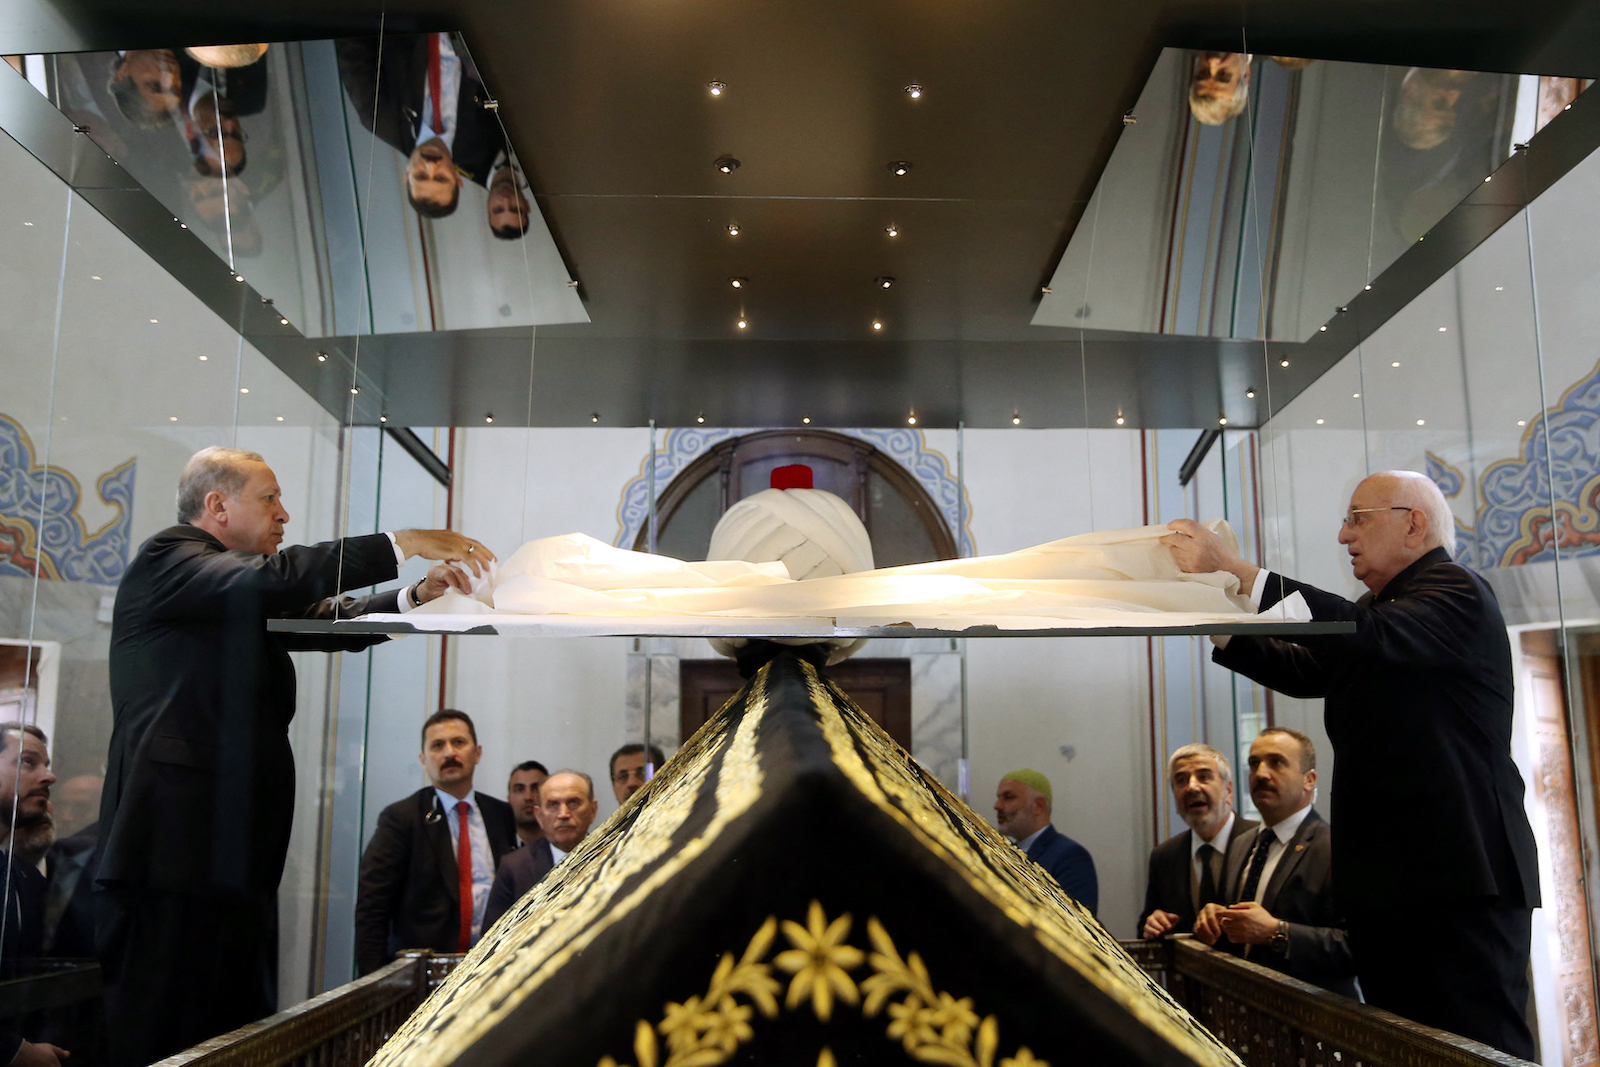 Turkish President Recep Tayyip Erdogan (Left) during an April 17, 2017, visit to the tomb of Yavuz Sultan Selim, a sultan of the former Ottoman Empire 1512-1520, in Istanbul, a day after Erdogan's victory in a national referendum. Photo : AFP / Yasin Bulbul / Turkish Presidential Press Office